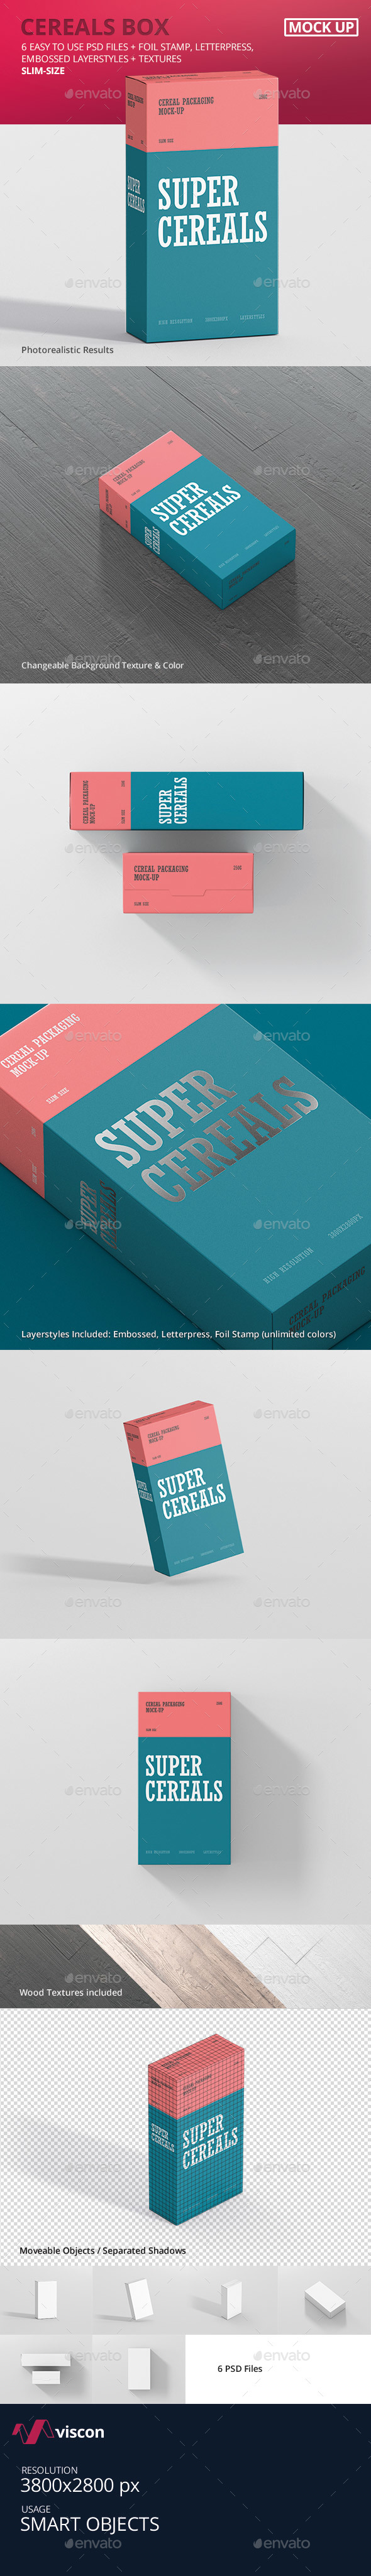 Cereals Box Mockup - Slim Size - Food and Drink Packaging